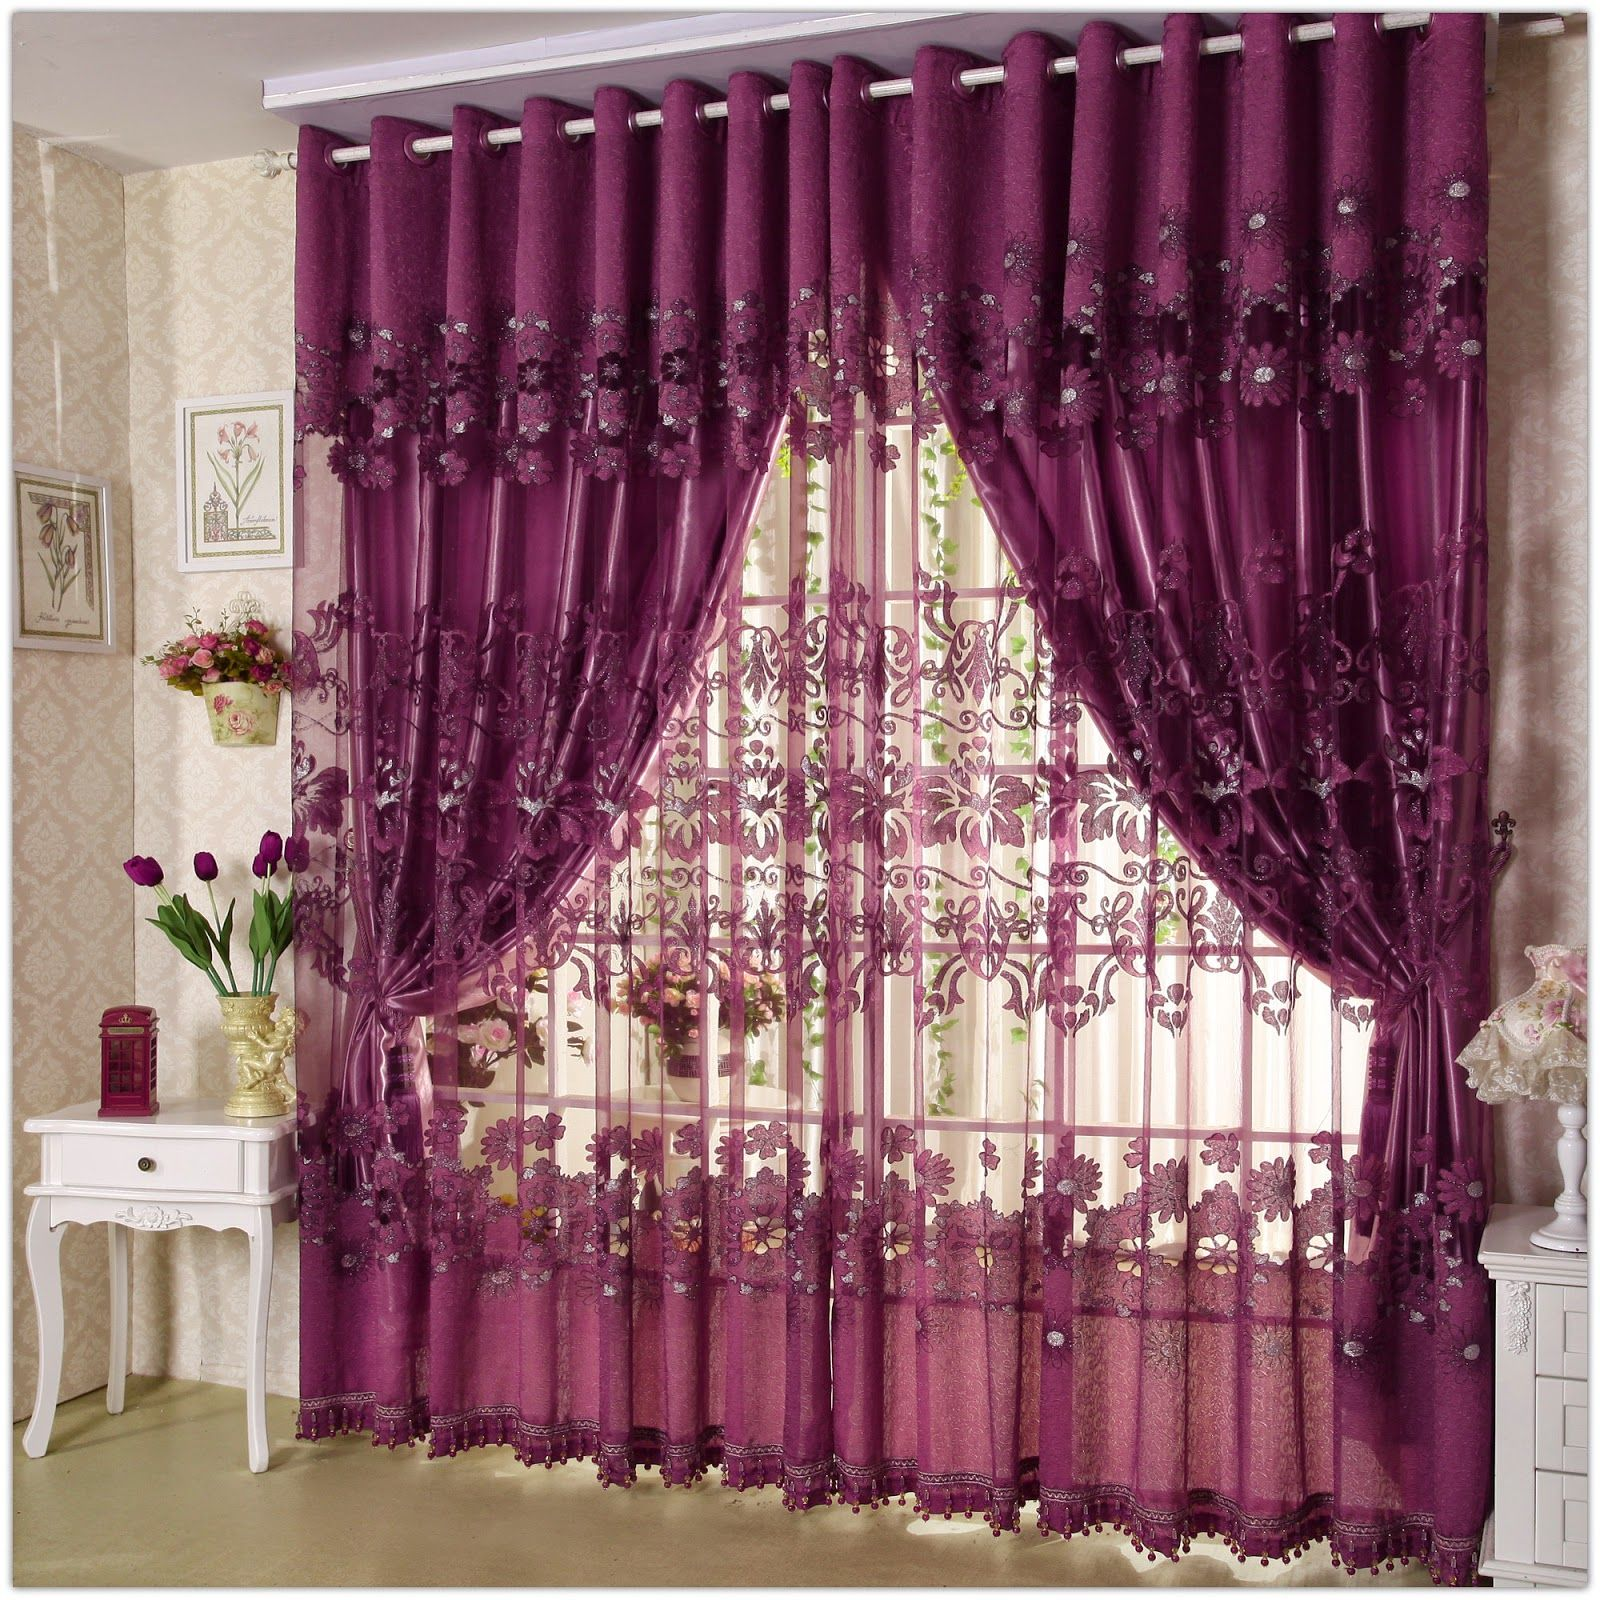 Unique curtain hanging ideas - Unique Curtain Designs For Living Room Window Decorations